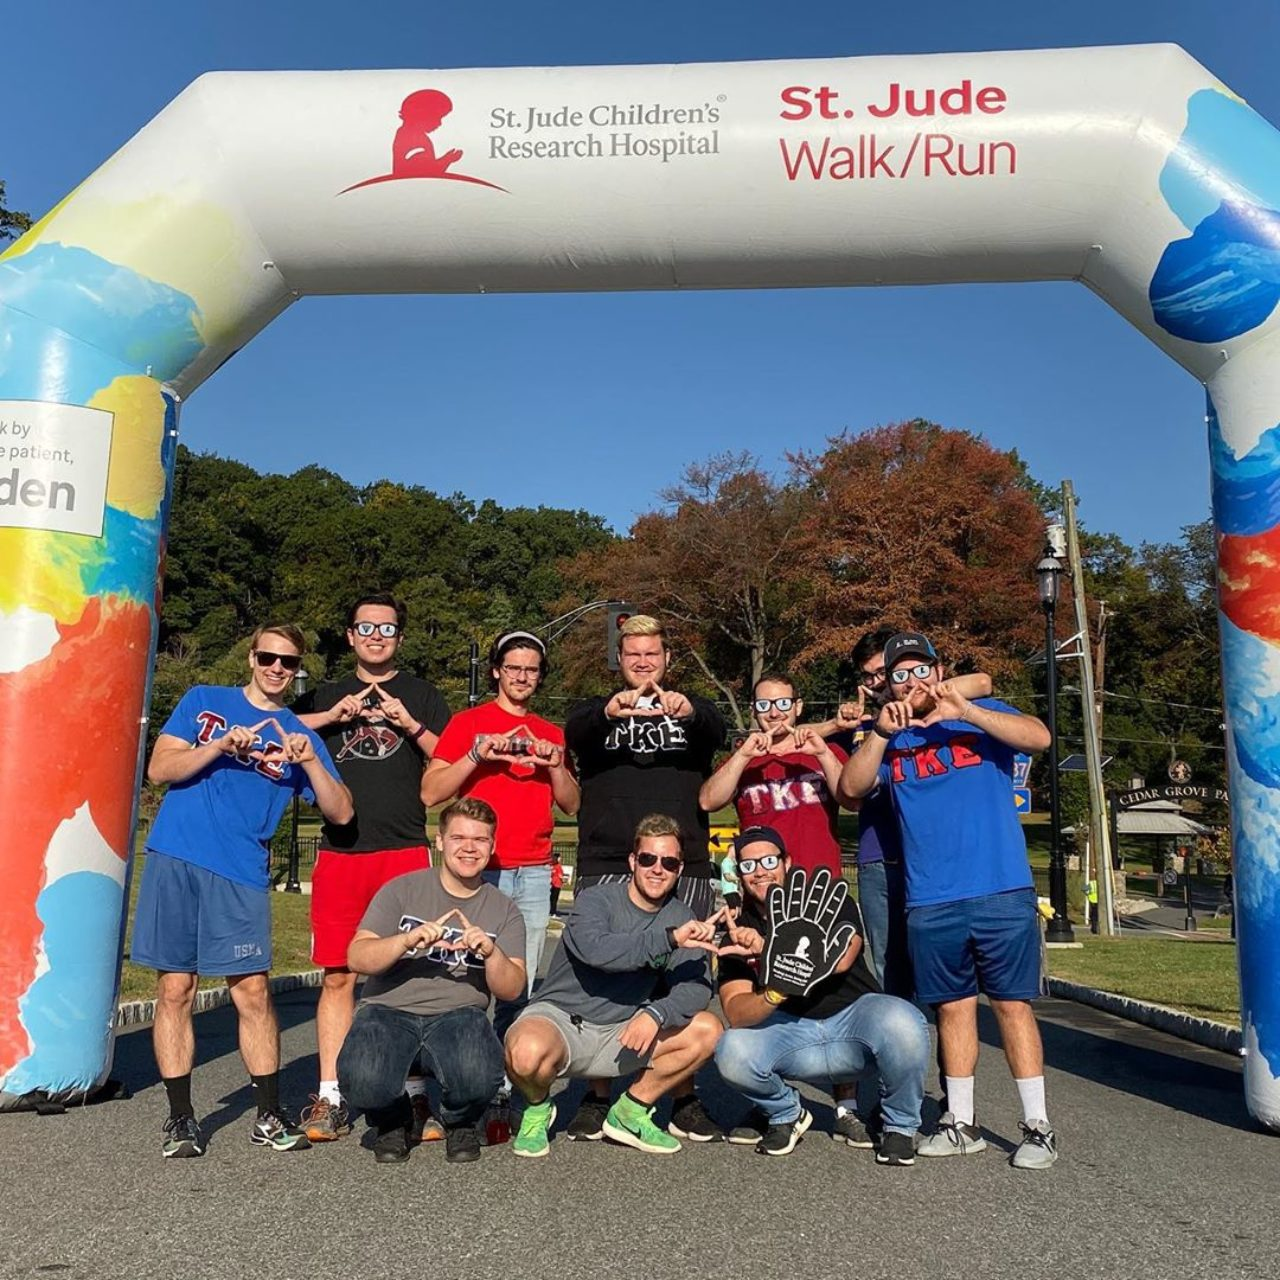 """Tau Kappa Epsilon members pose in front of an inflatable arch that reads, """"St. Jude Children's Research Hospital. St. Jude Walk/Run"""